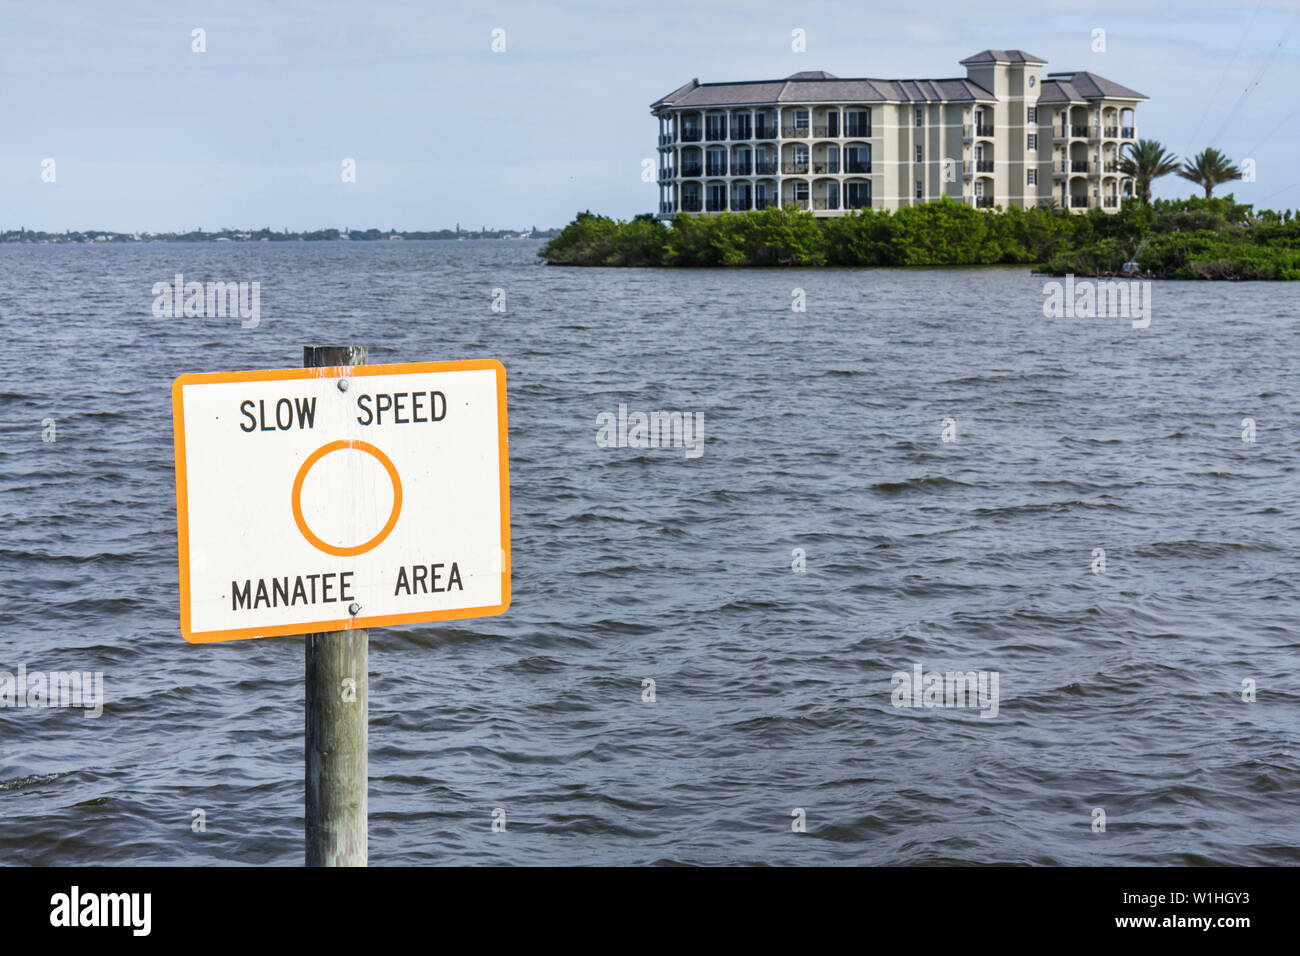 Melbourne Florida Indian River waterfront coastal area condominium building four story pylon sign manatee area slow speed endang Stock Photo